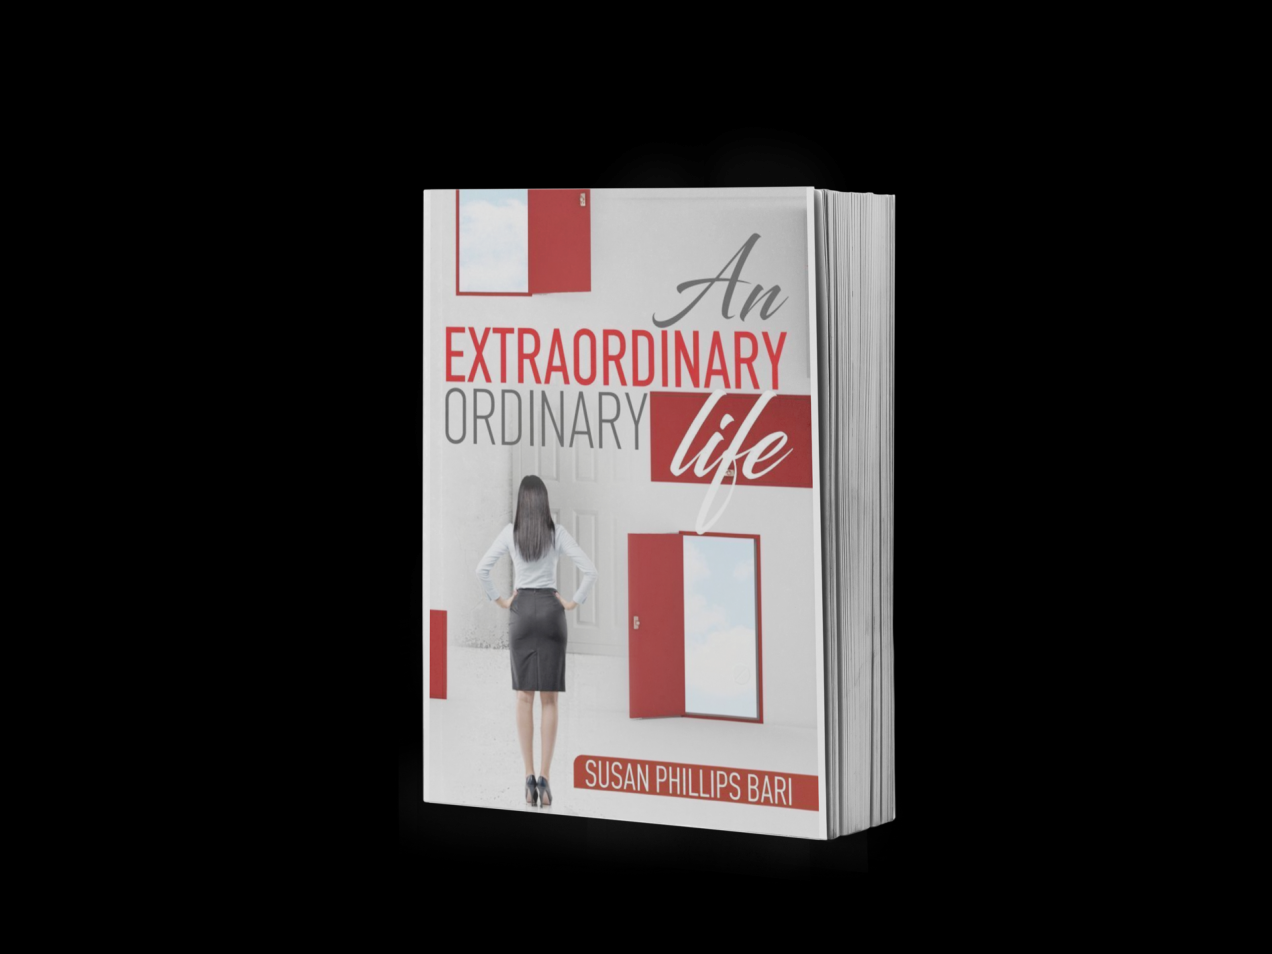 An Extraordinary Ordinary Life by Susan Phillips Bari